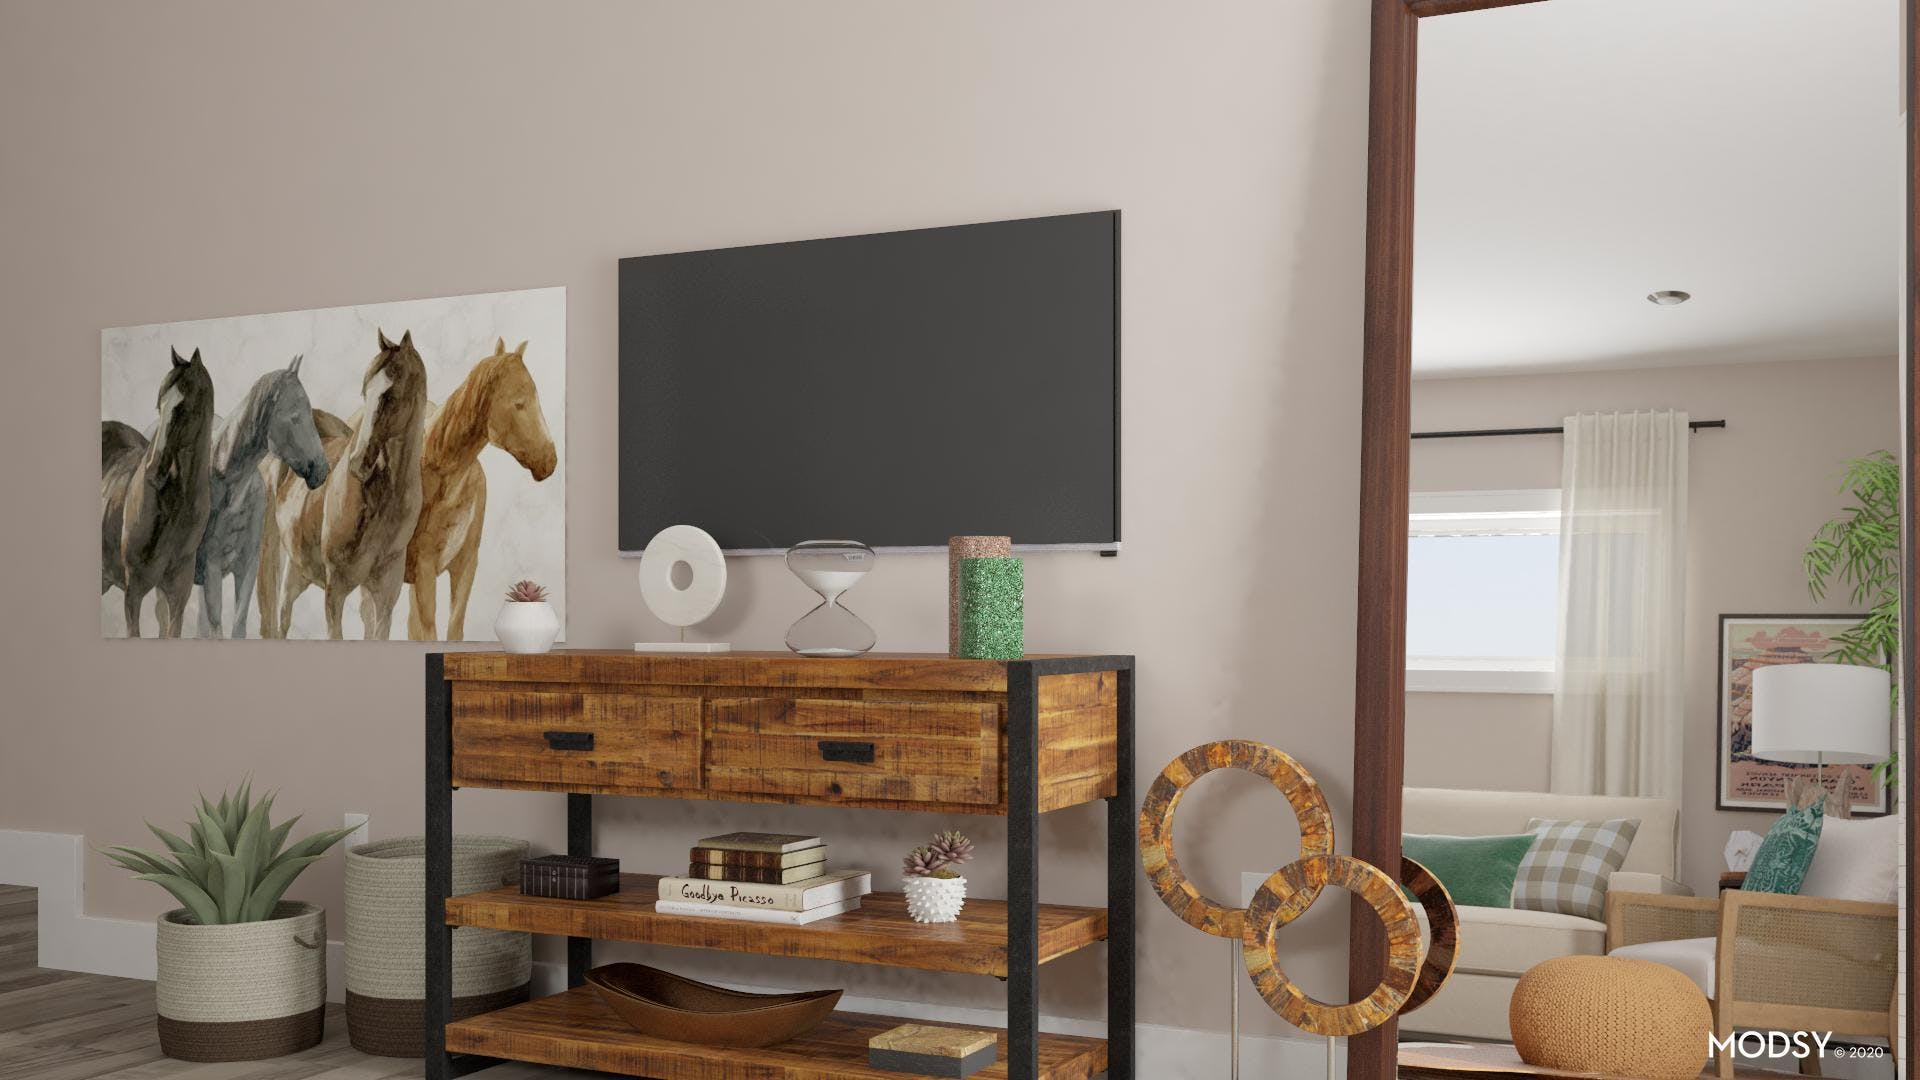 Distressed Media Console: Rustic Flair